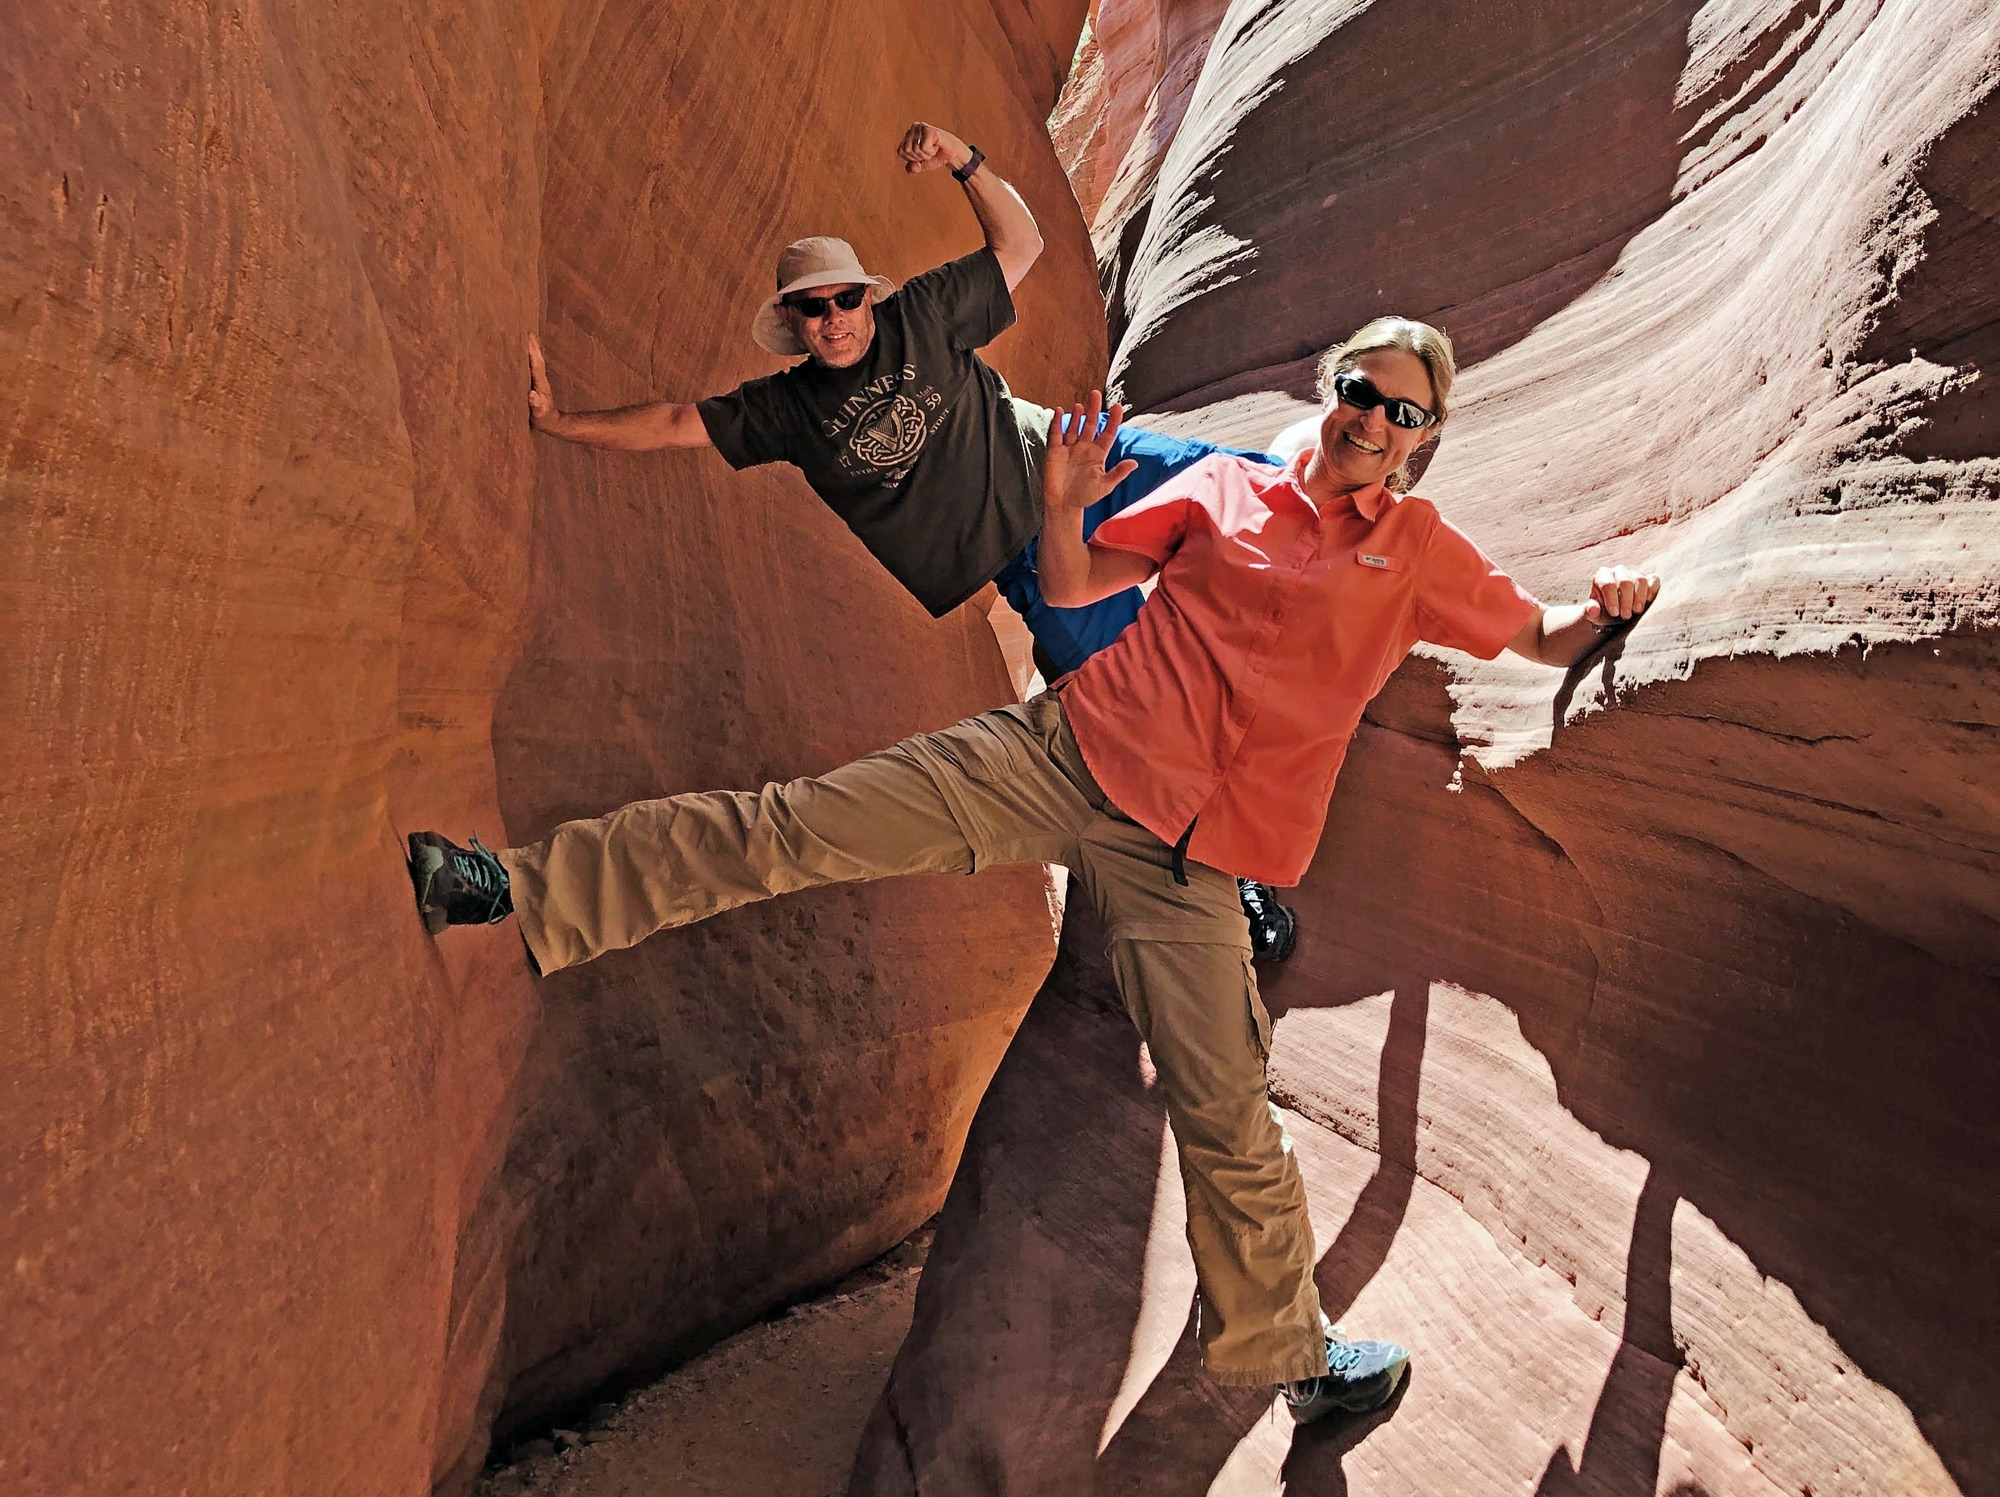 Tour guide poses with guest in slot canyon